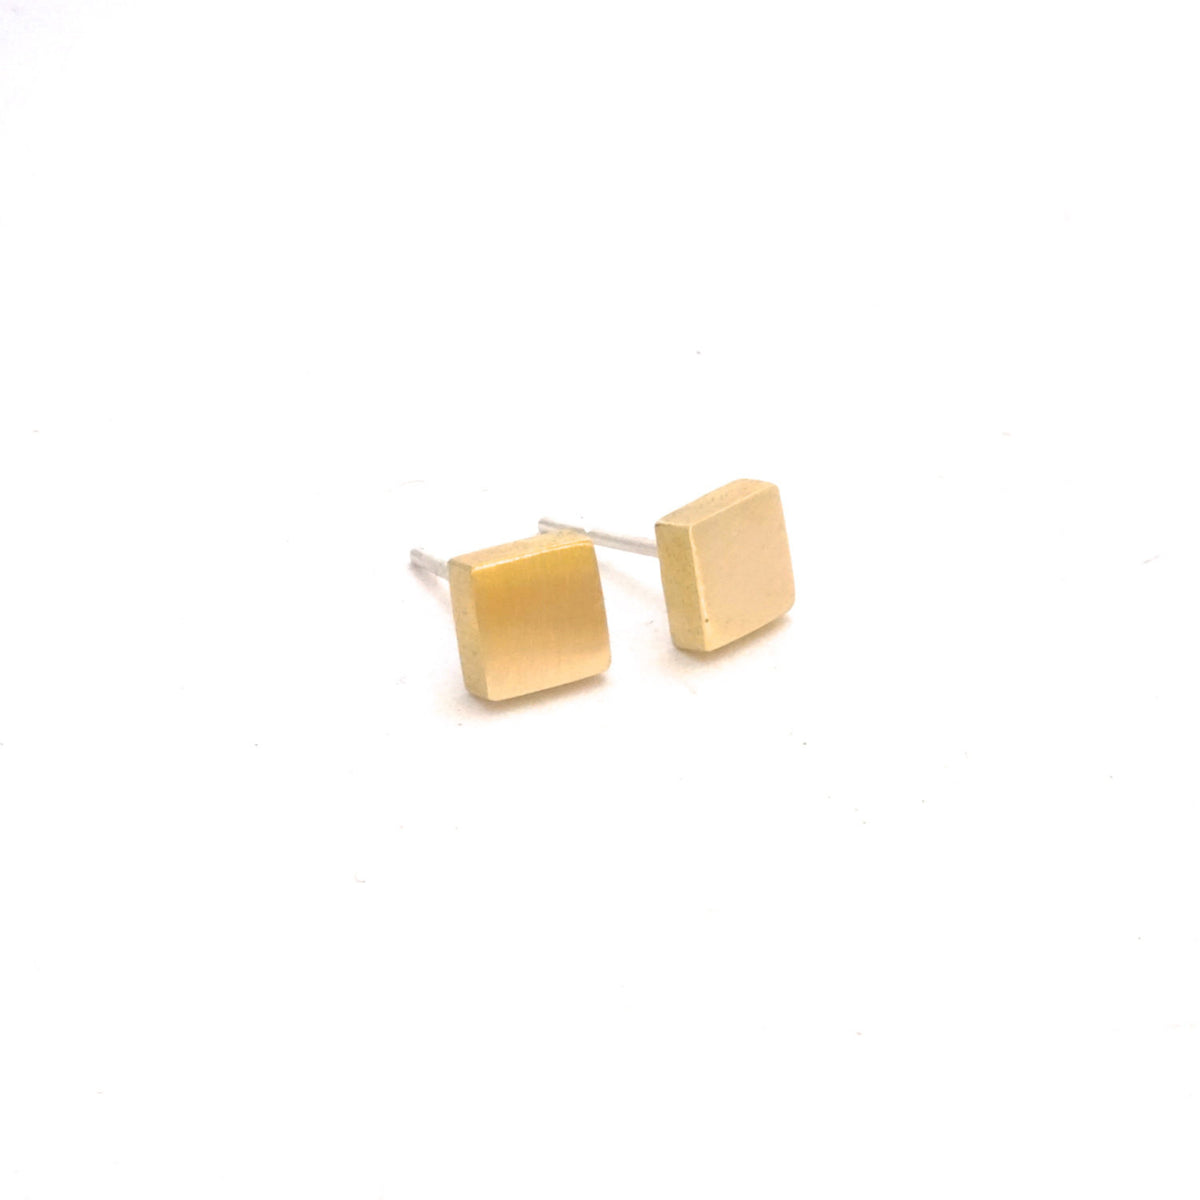 Affordable Hand-Crafted Gold Colored Brass or Sterling Silver Square Stud Earrings - 0170 - Virginia Wynne Designs